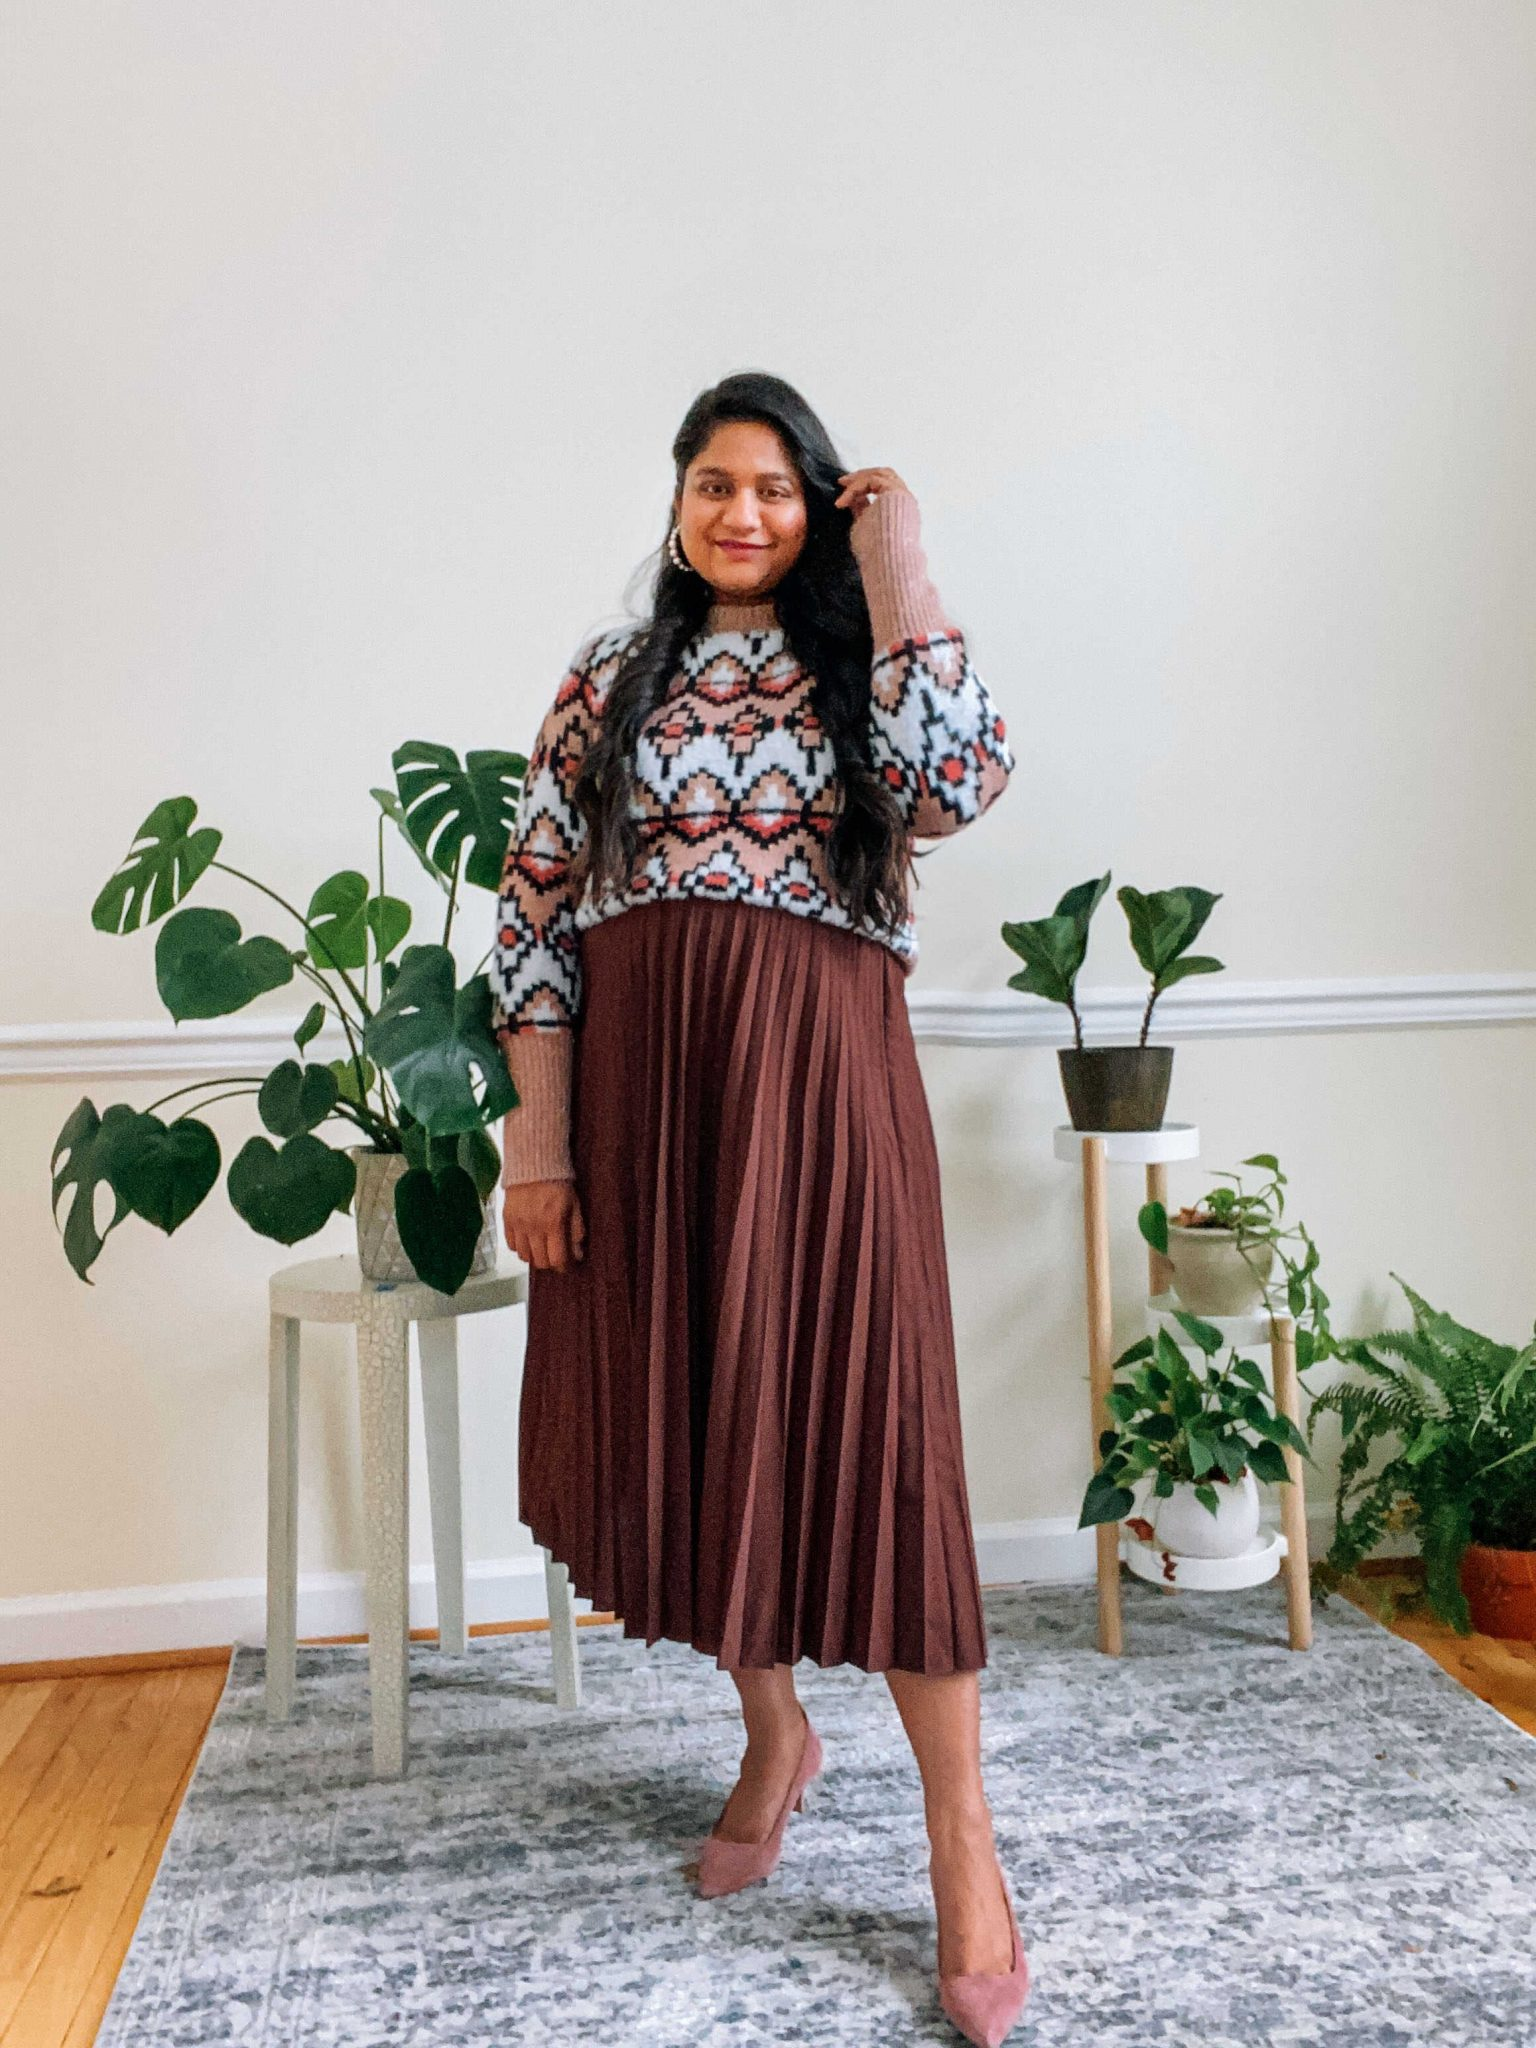 Maternity Valentines Outfits-wearing Ann Taylor Fair Isle Jacquard Sweater , Burgundy Pleated skirt, blush pink pumps |Valentine's Day Maternity Outfit by popular Maryland modest fashion blog, Dreaming Loud: image of a pregnant woman wearing a pleated skirt, sweater, and pink suede heels.